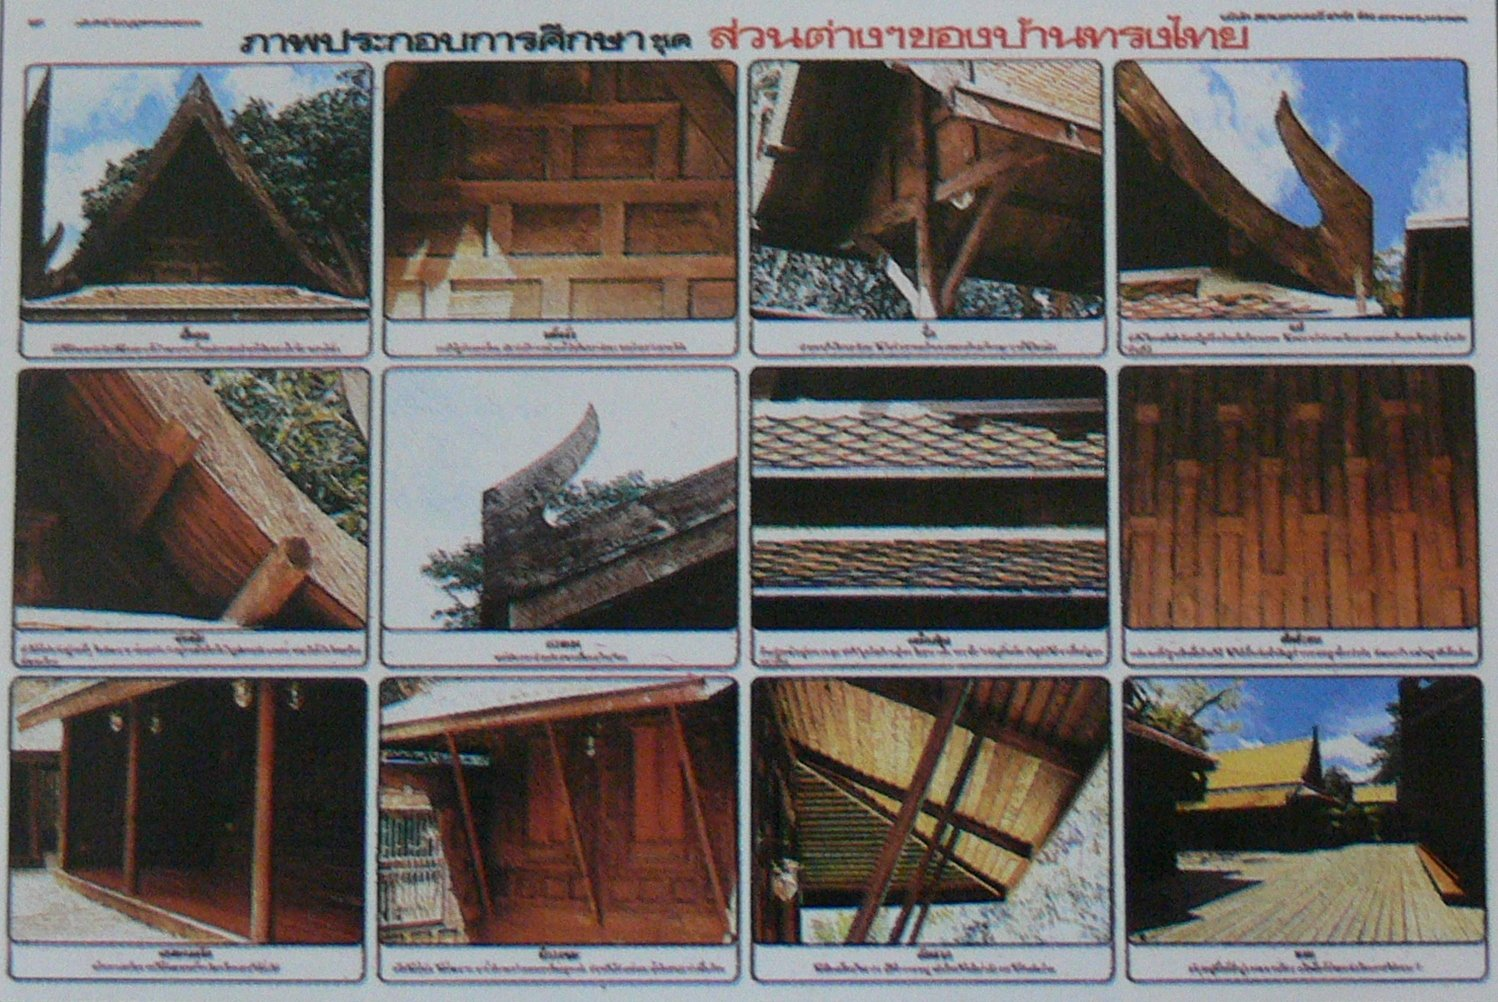 Parts of Thai Traditional Style House Education Poster Collection Wood Housing